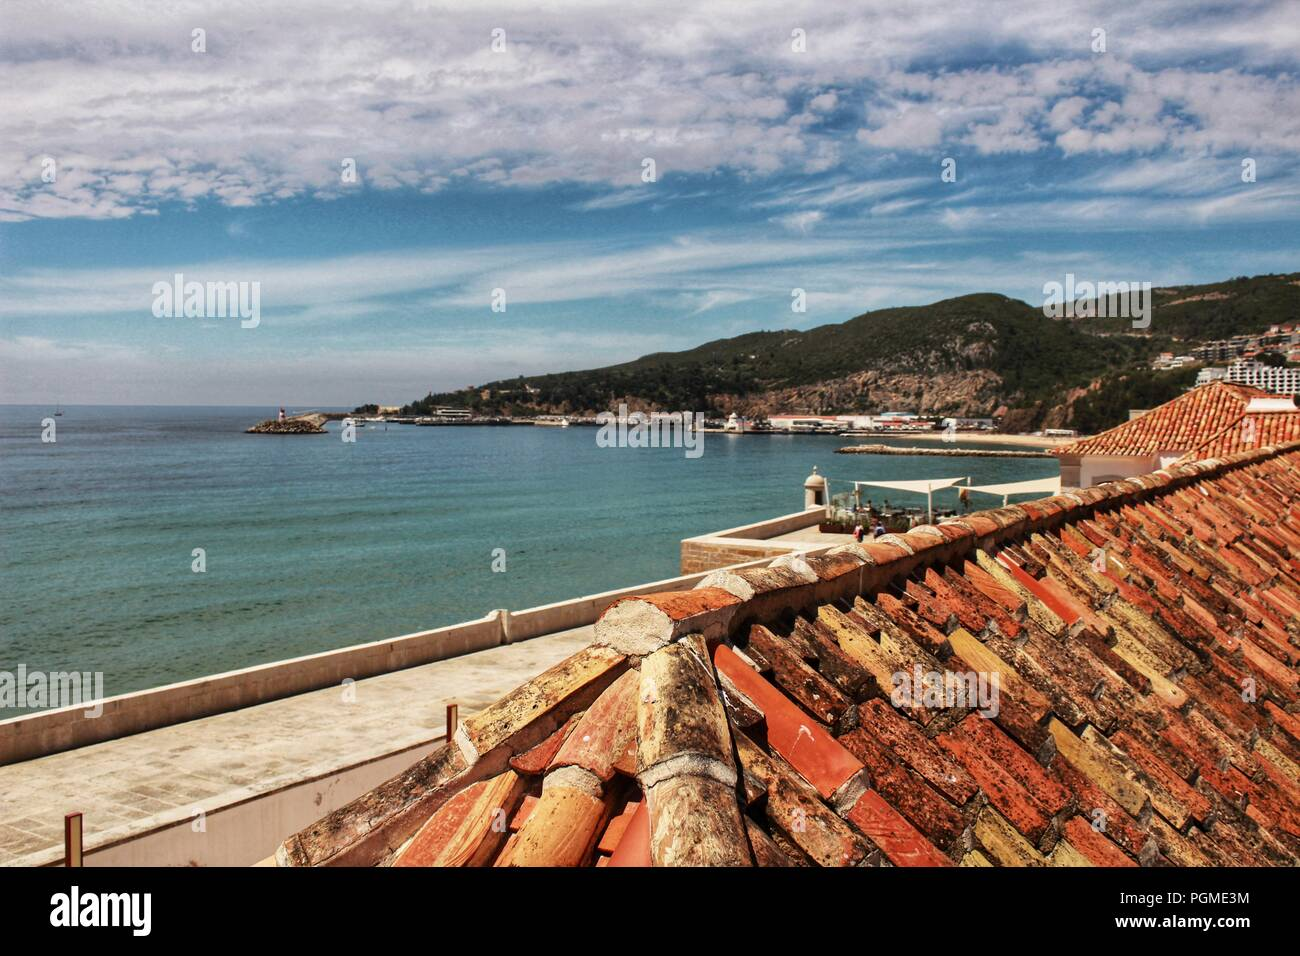 Sesimbra village views from the roof under blue sky in spring - Stock Image